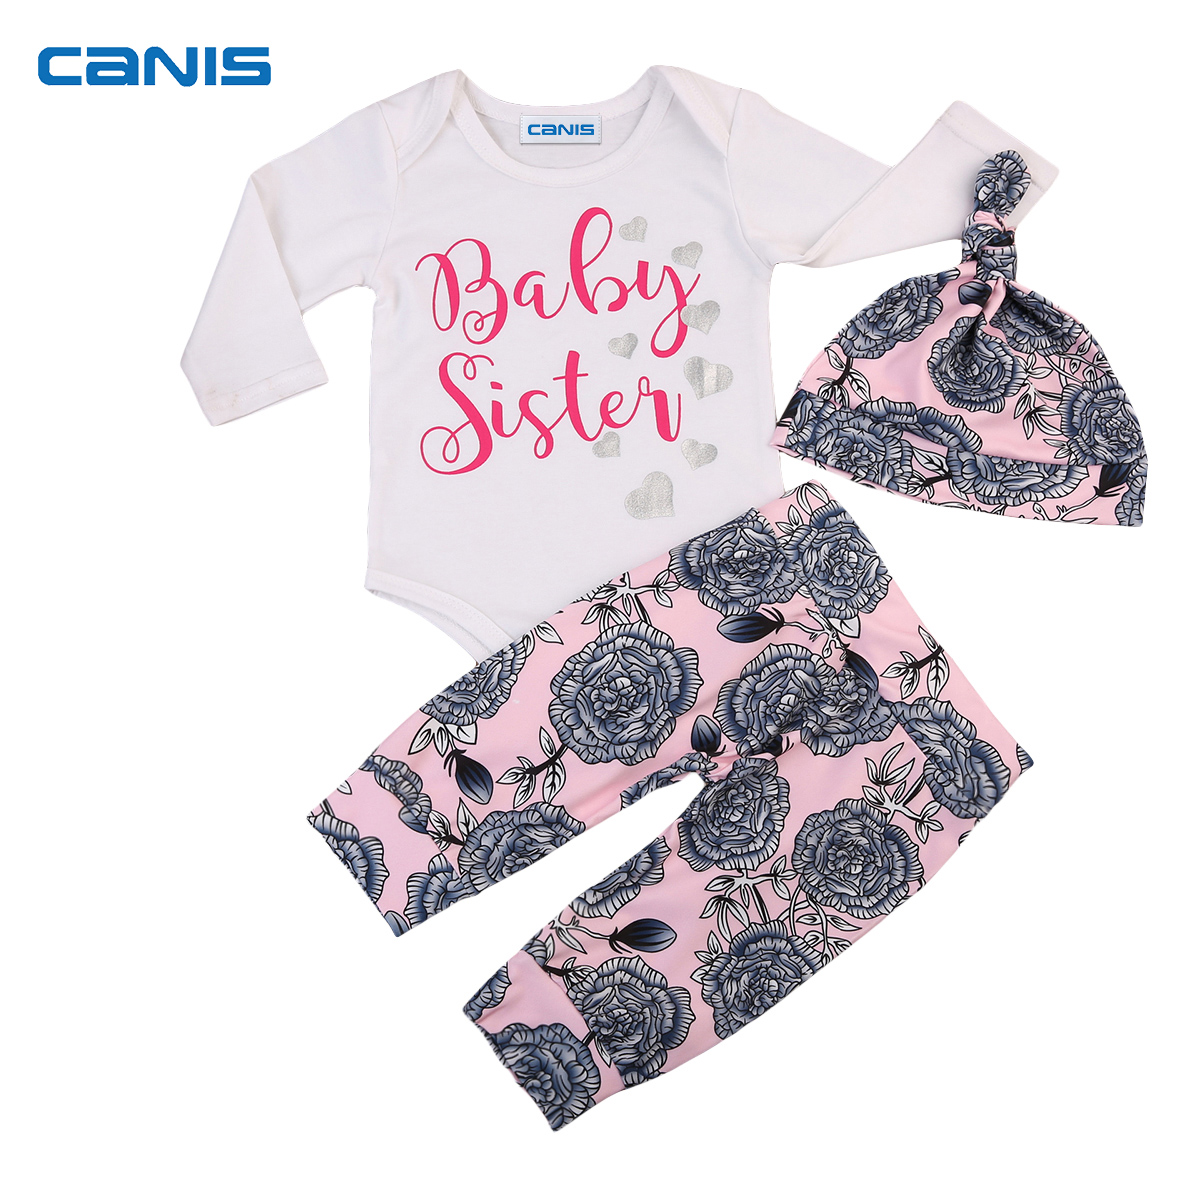 2017 New Brand Newborn Toddler Infant Baby Girls Long Sleeve Romper Floral Pants Hat 3pcs Outfits Clothes Set Casual Clothes fashion 2pcs set newborn baby girls jumpsuit toddler girls flower pattern outfit clothes romper bodysuit pants